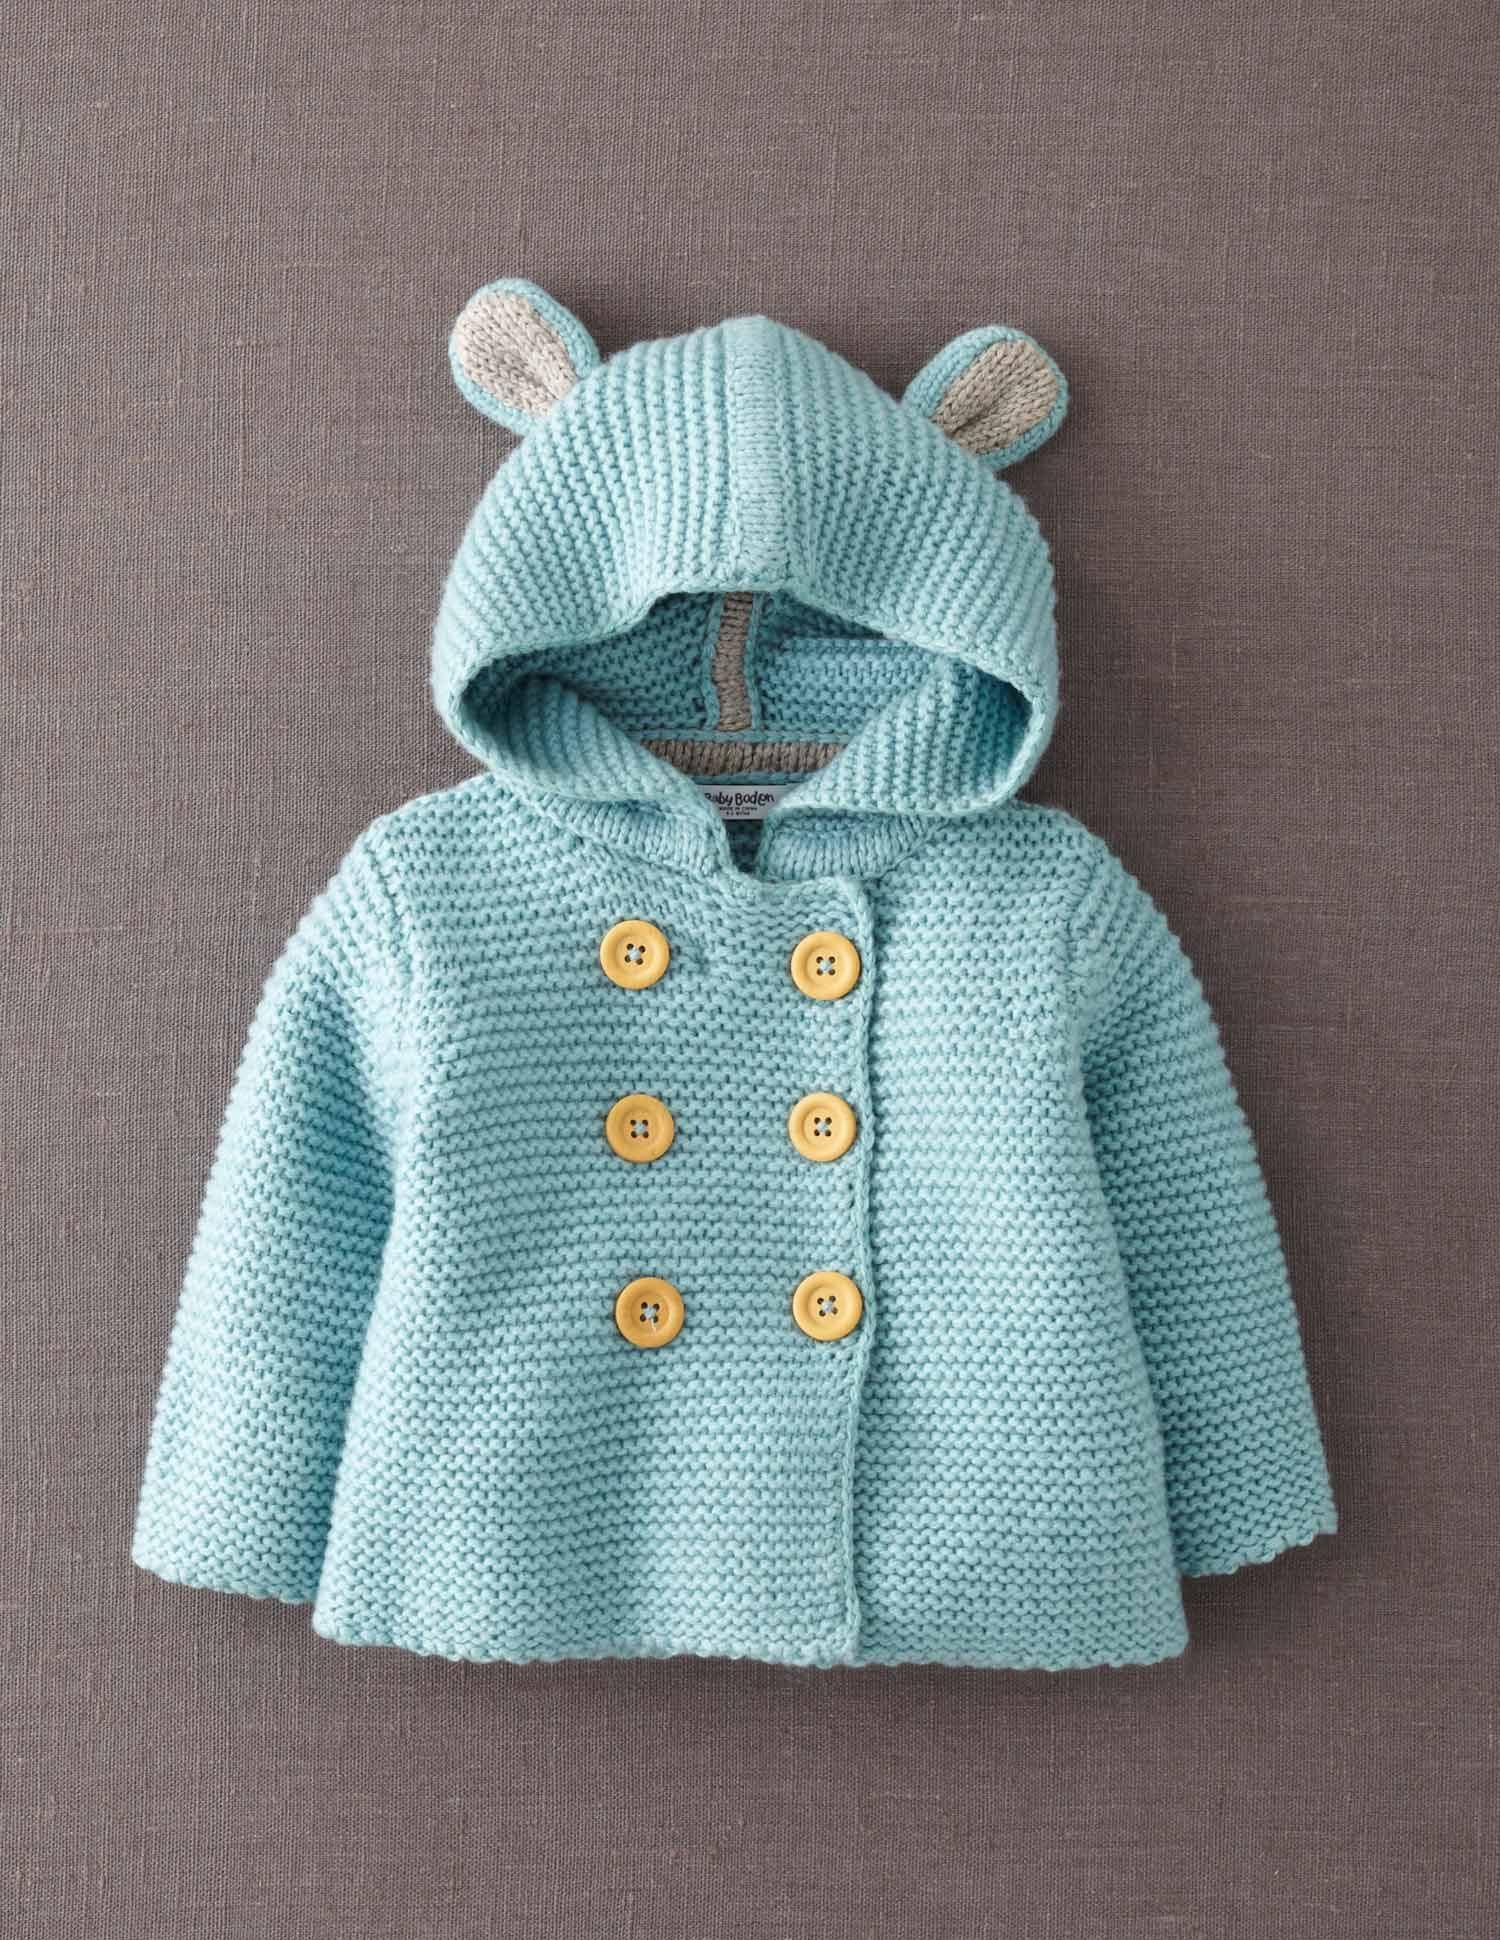 Baby Boy 3-6 Month Baby Gap Turquoise Knitted Garter Bear Hooded Sweater